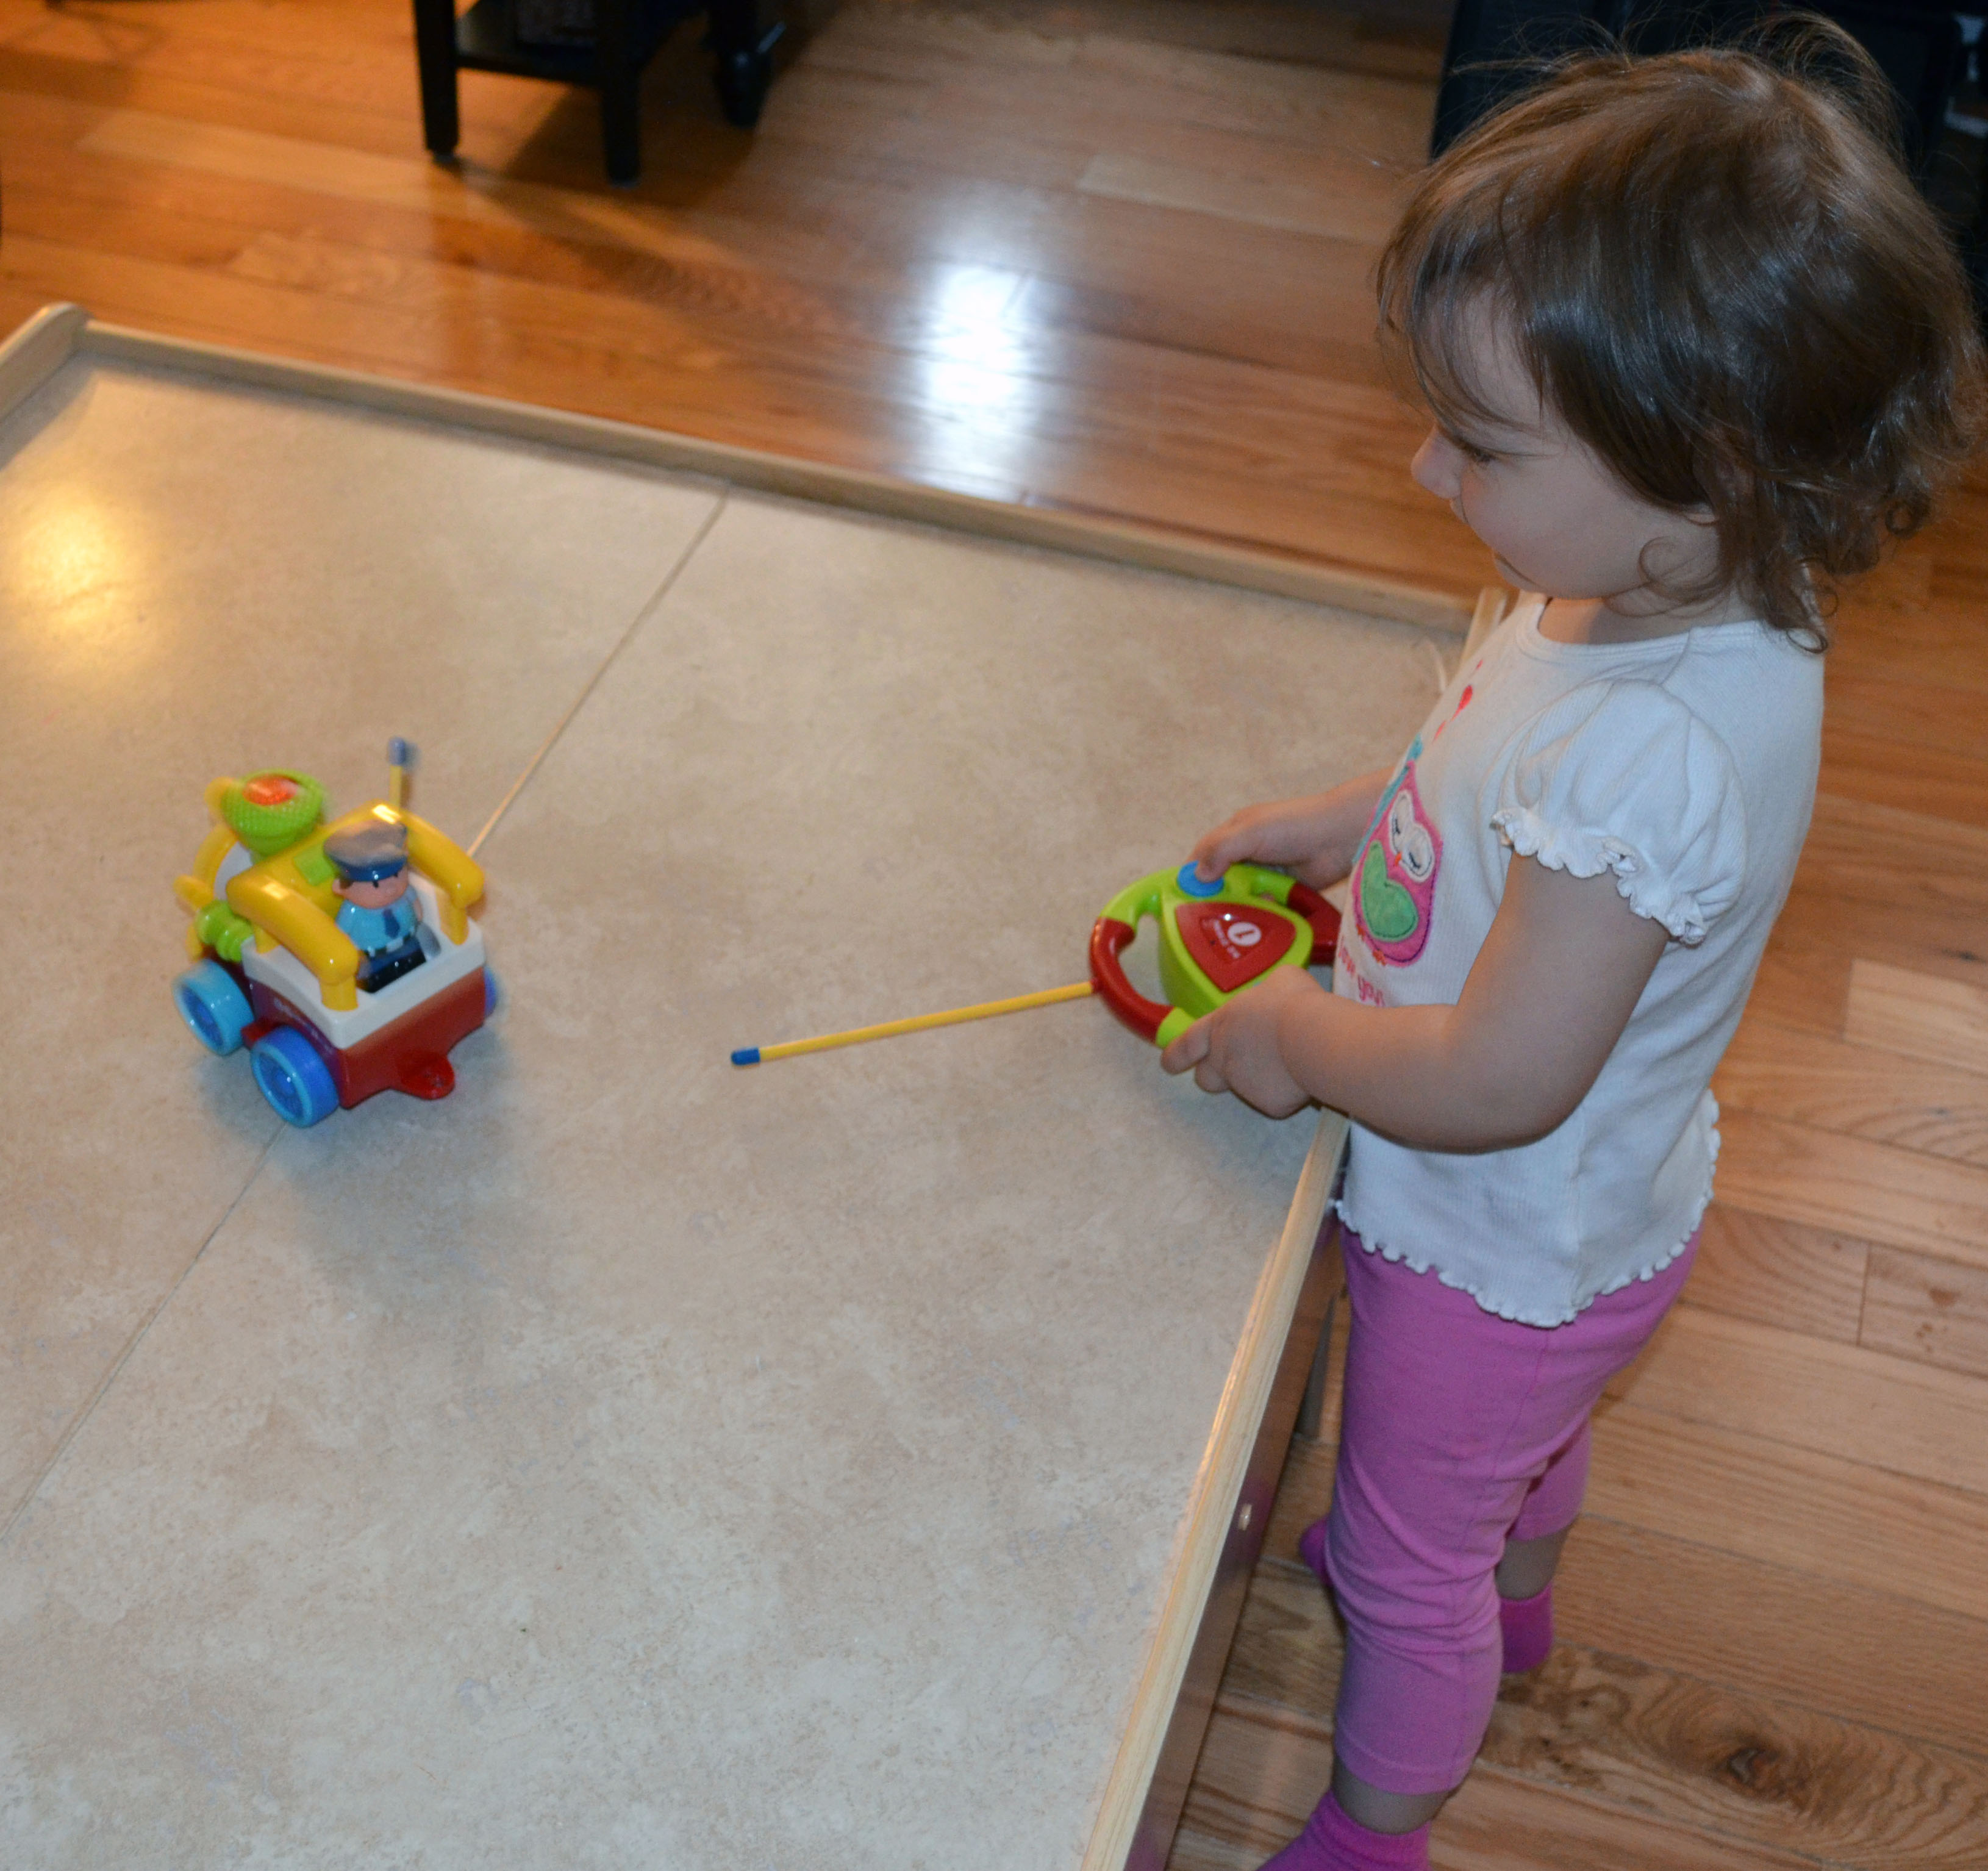 My youngest daughter getting the hang of it.